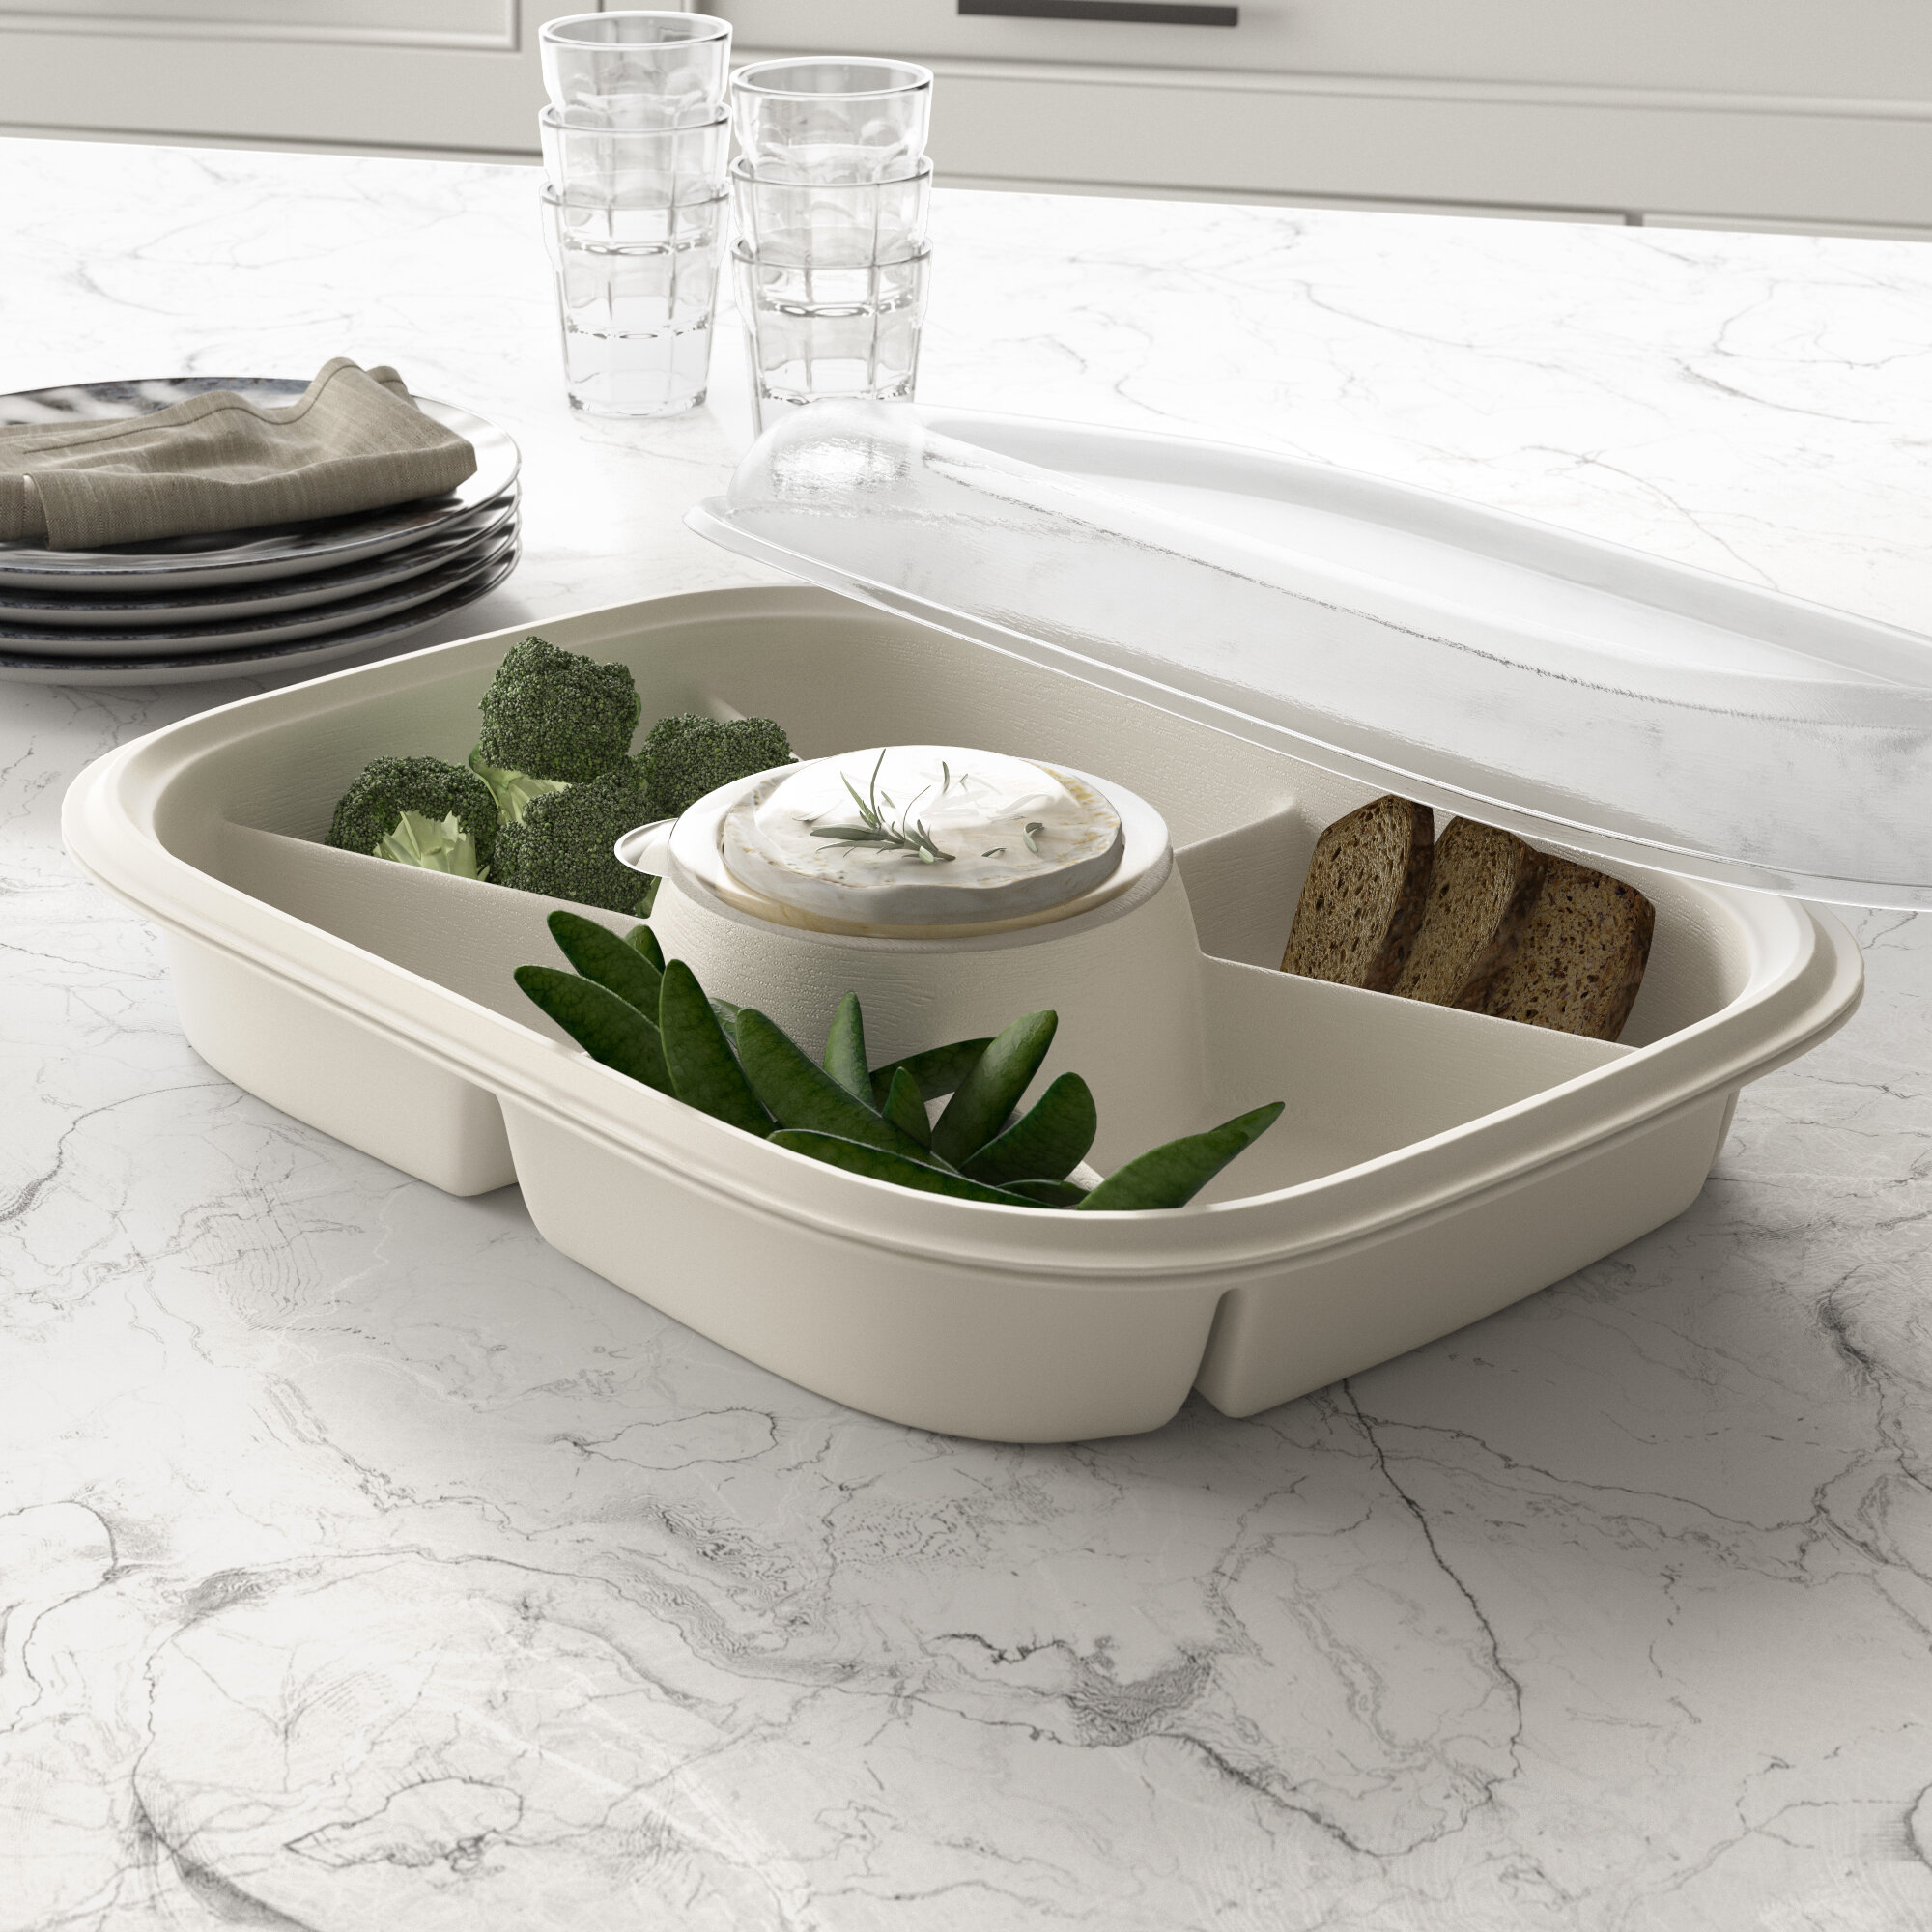 4 Serving Dishes Up To 40 Off Until 11 20 Wayfair Wayfair Ca